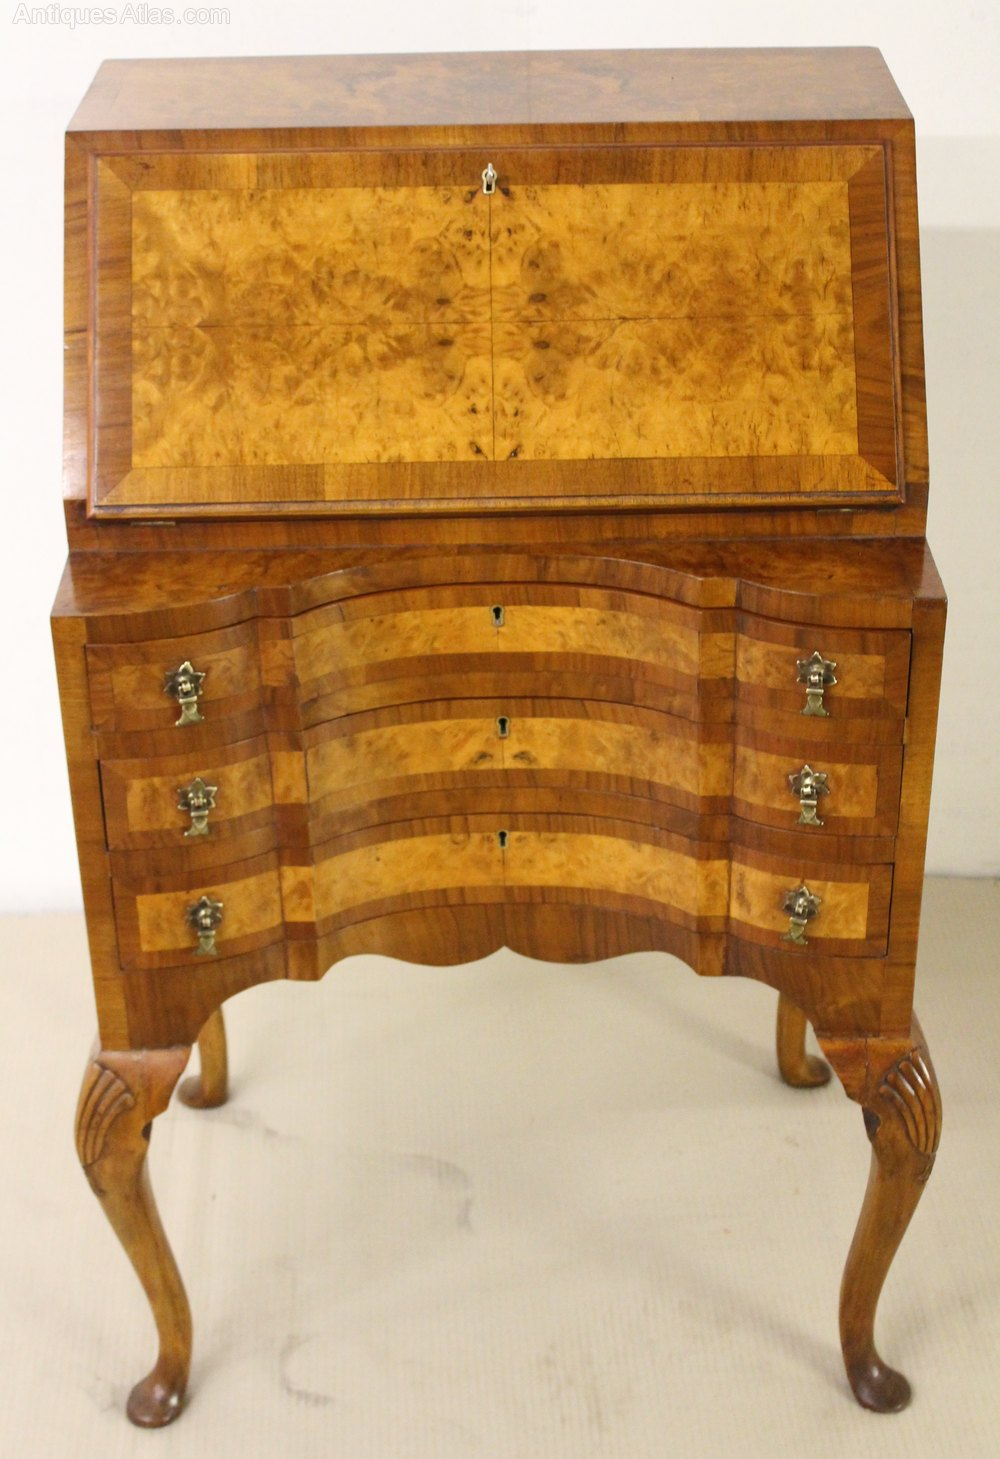 Queen anne style burr walnut bureau antiques atlas for Queen anne style